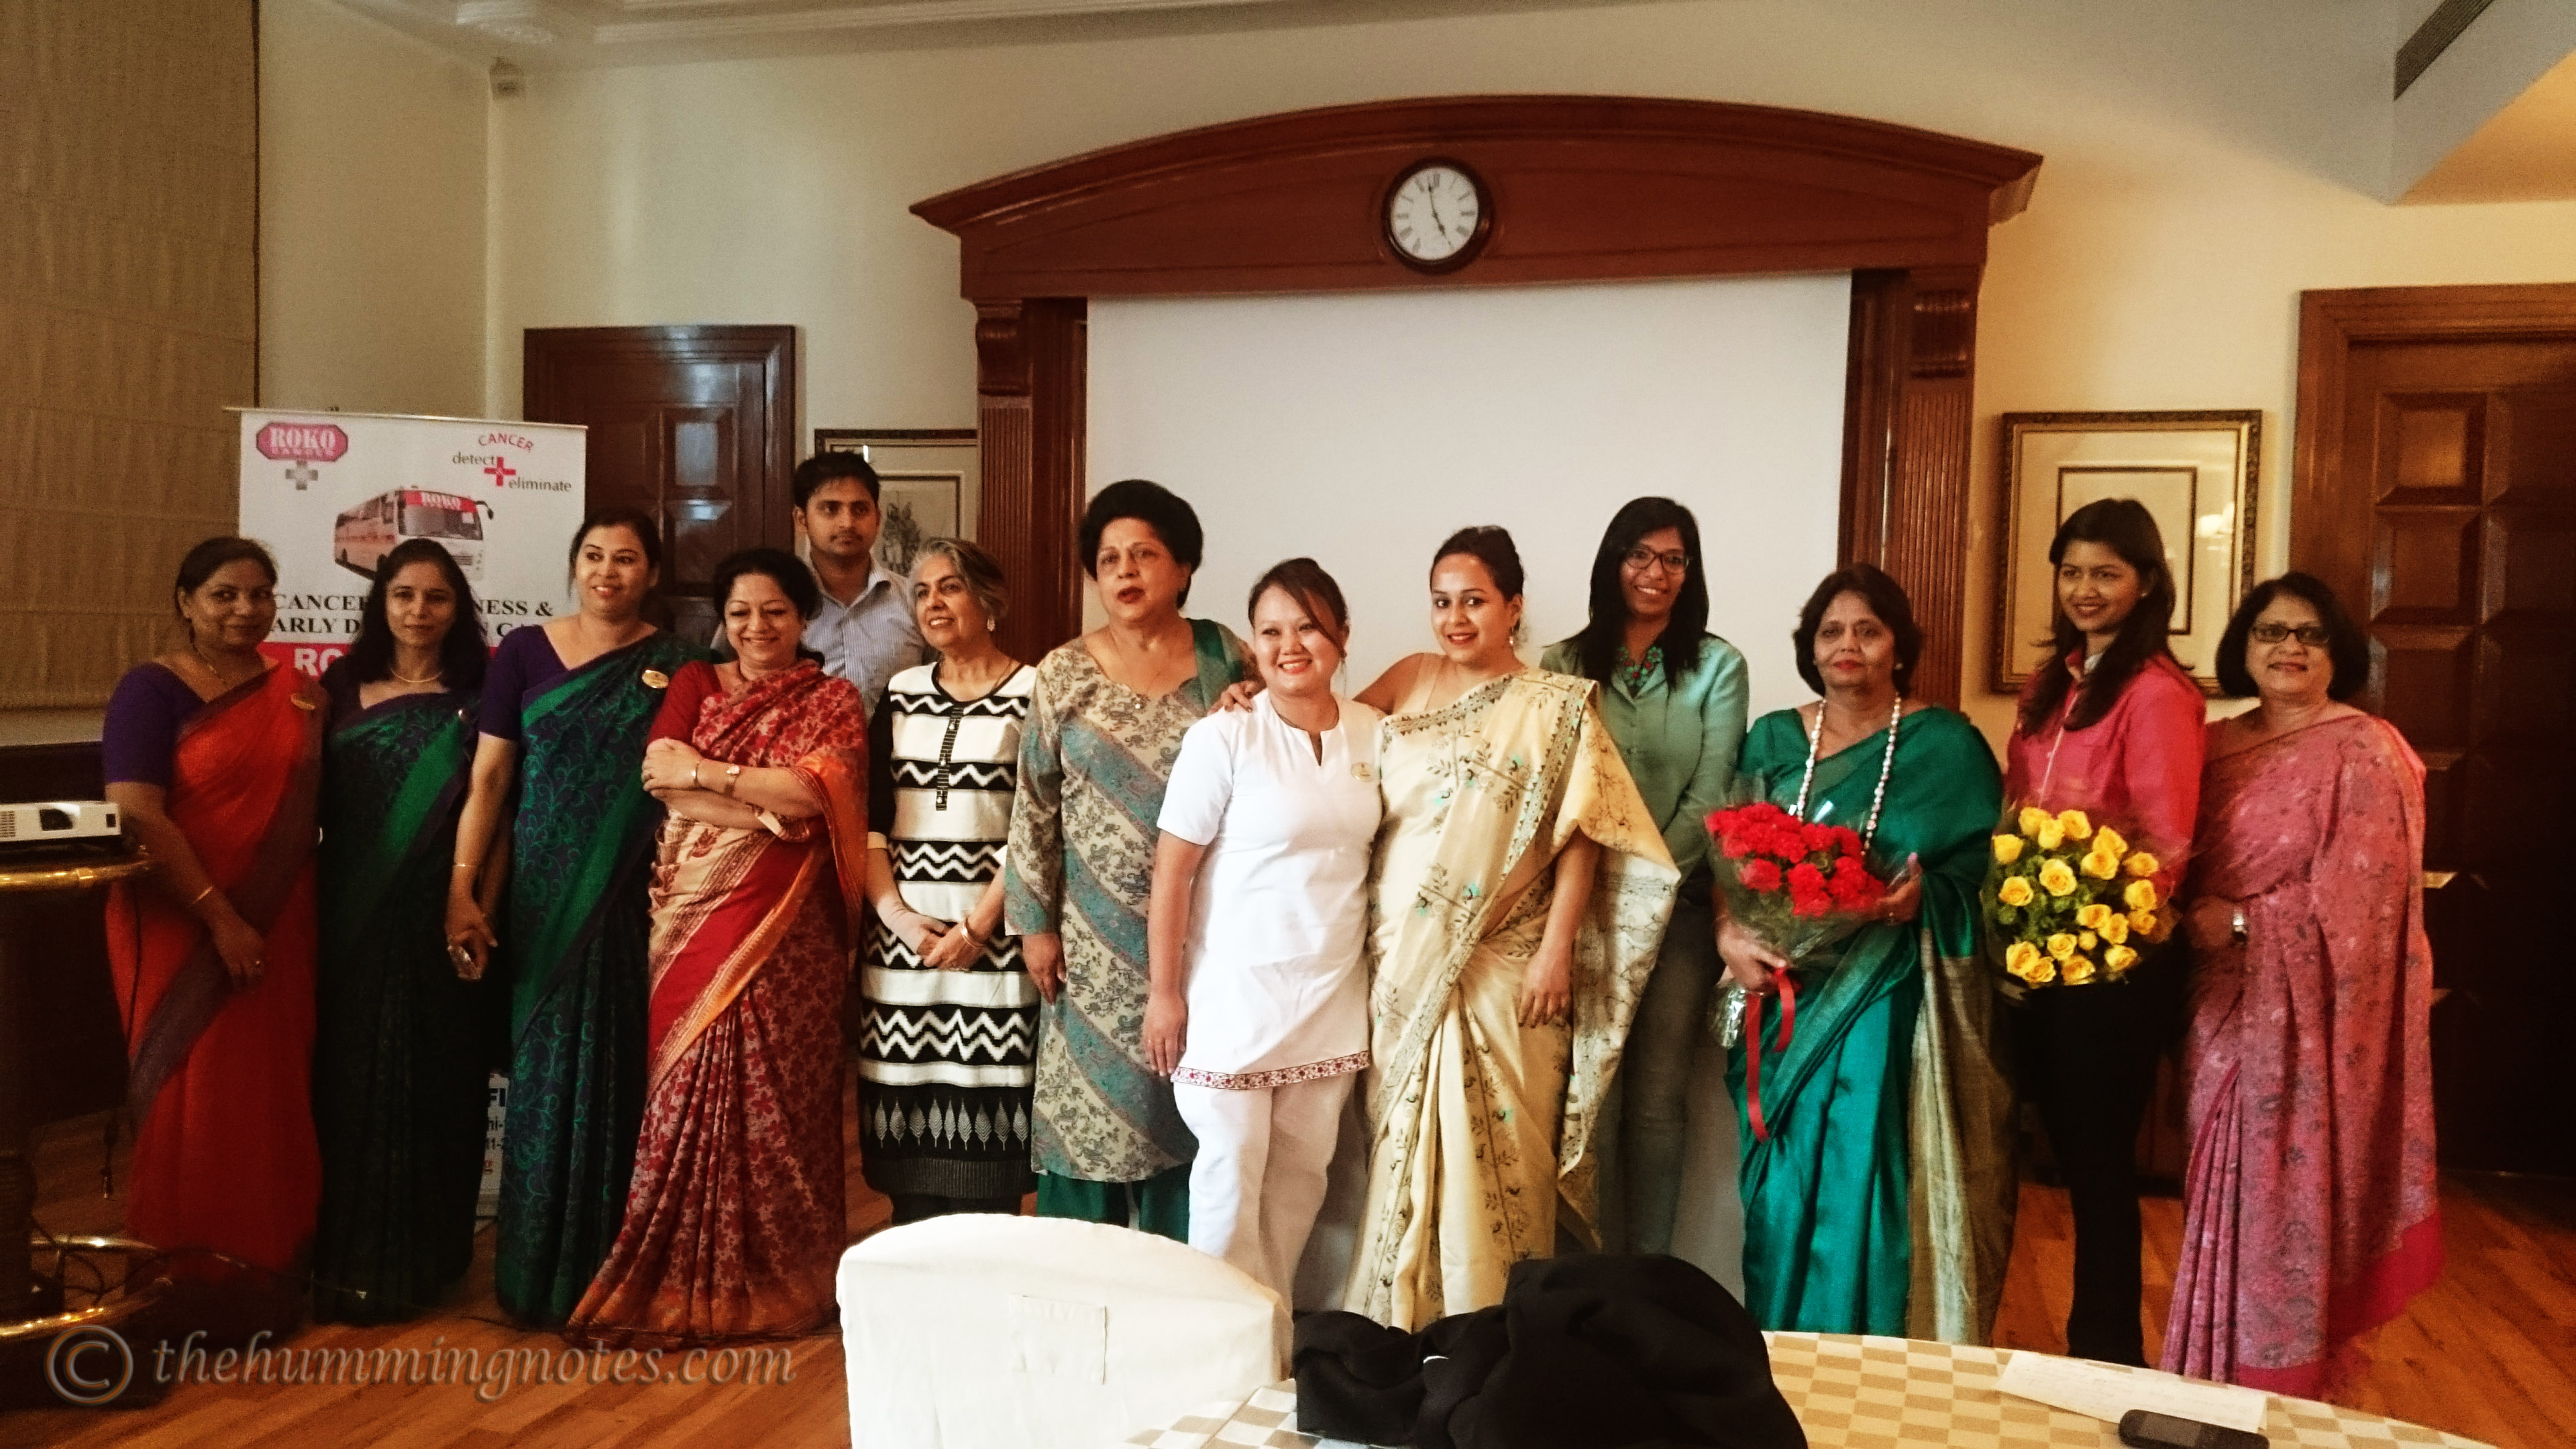 Members of The Imperial Ladies' Club and Roko Cancer Charitable Trust come together to create awareness towards women's health